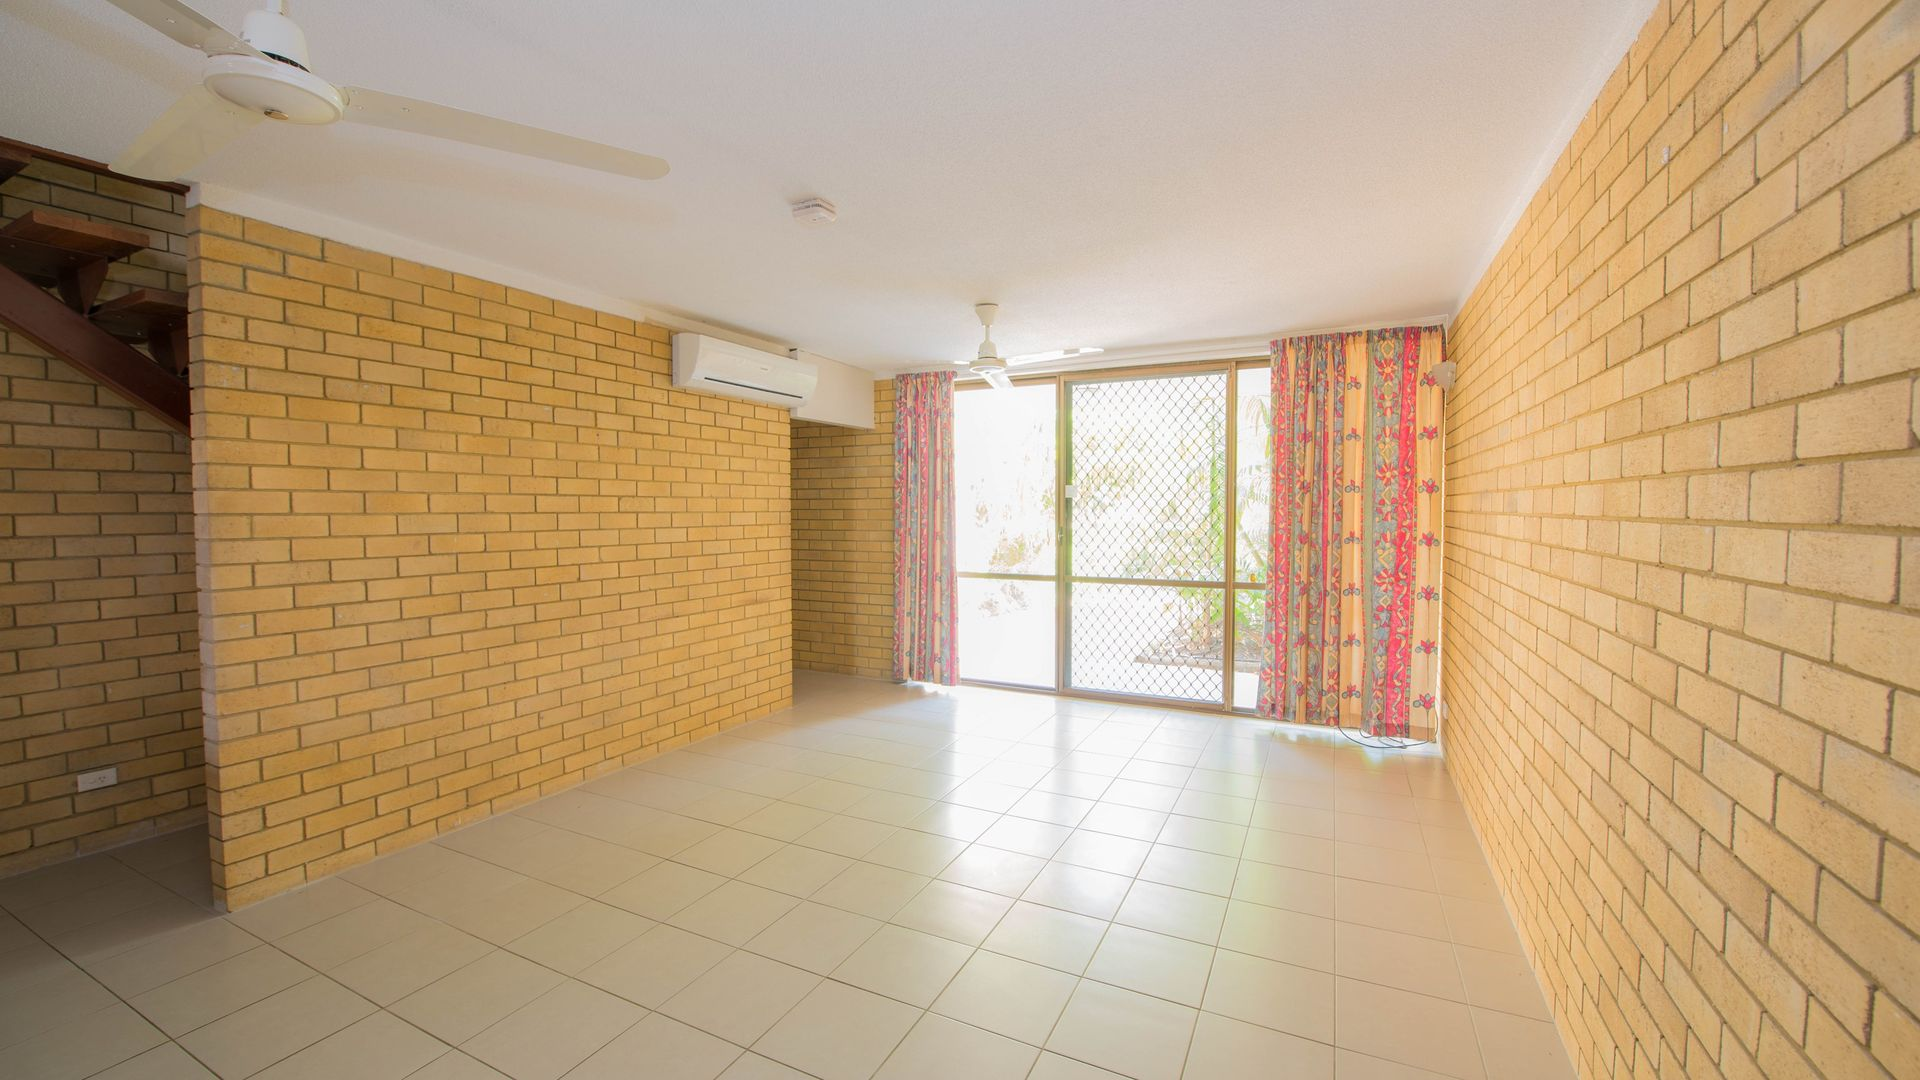 3/10 Charlotte Street, Parap NT 0820, Image 1